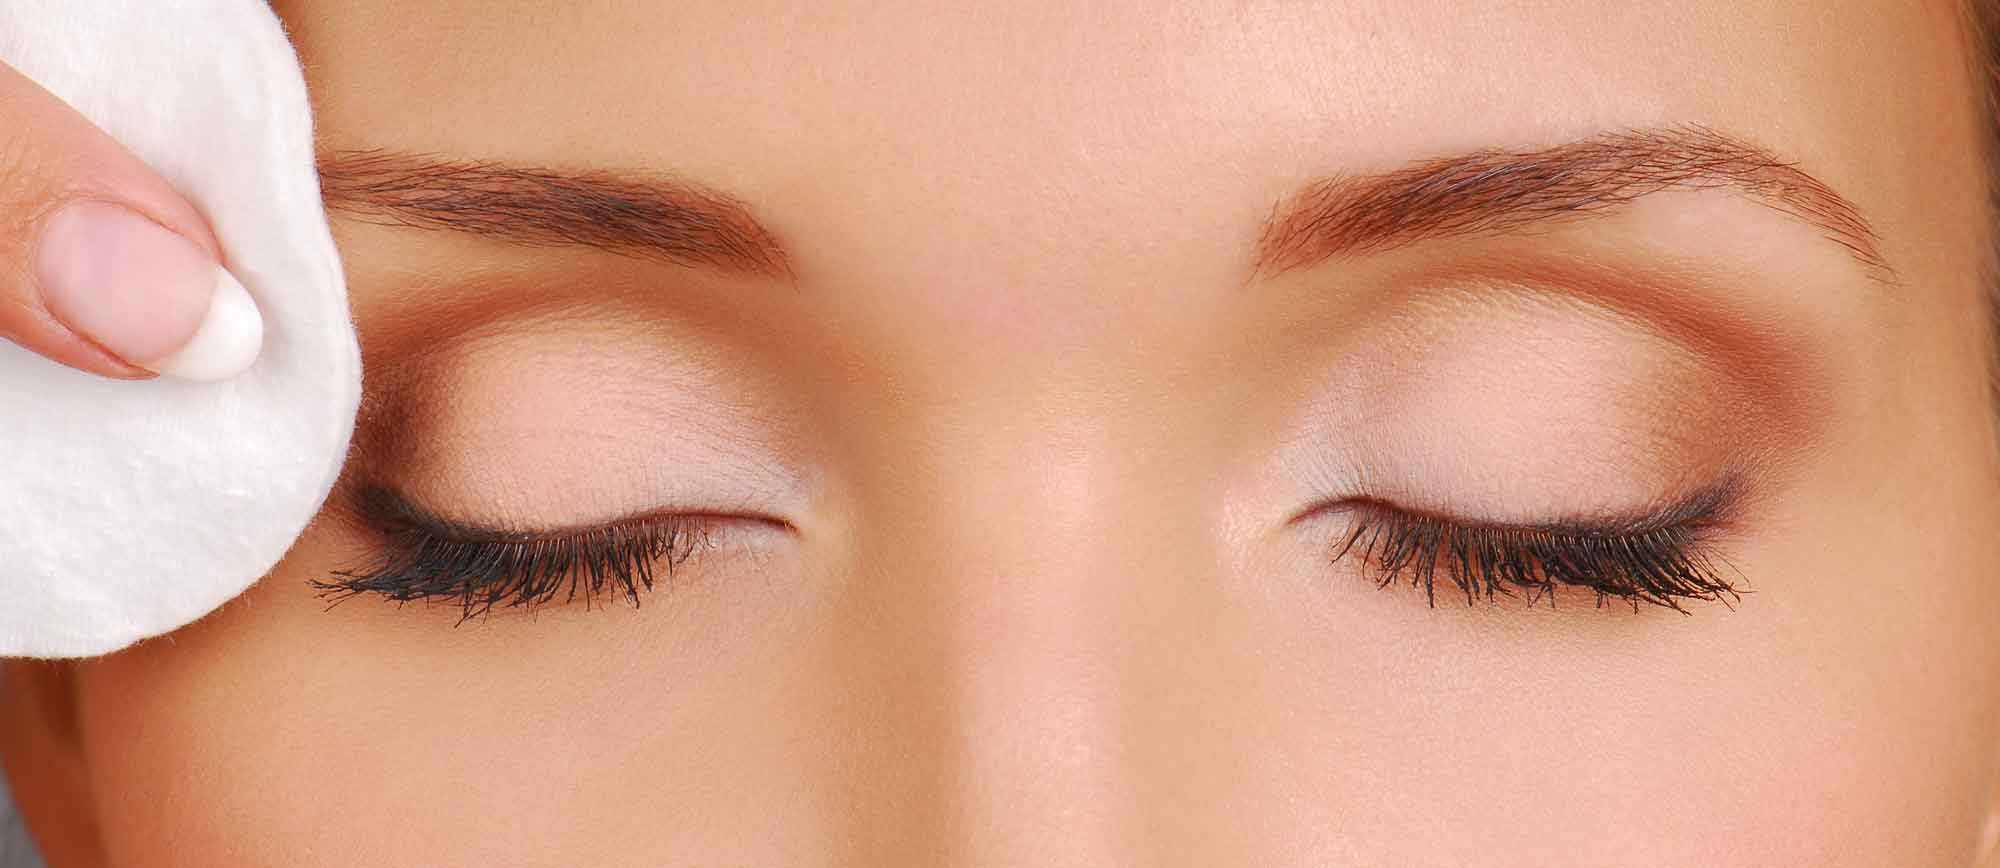 How To Remove Eye Make Up Safely Humanitas